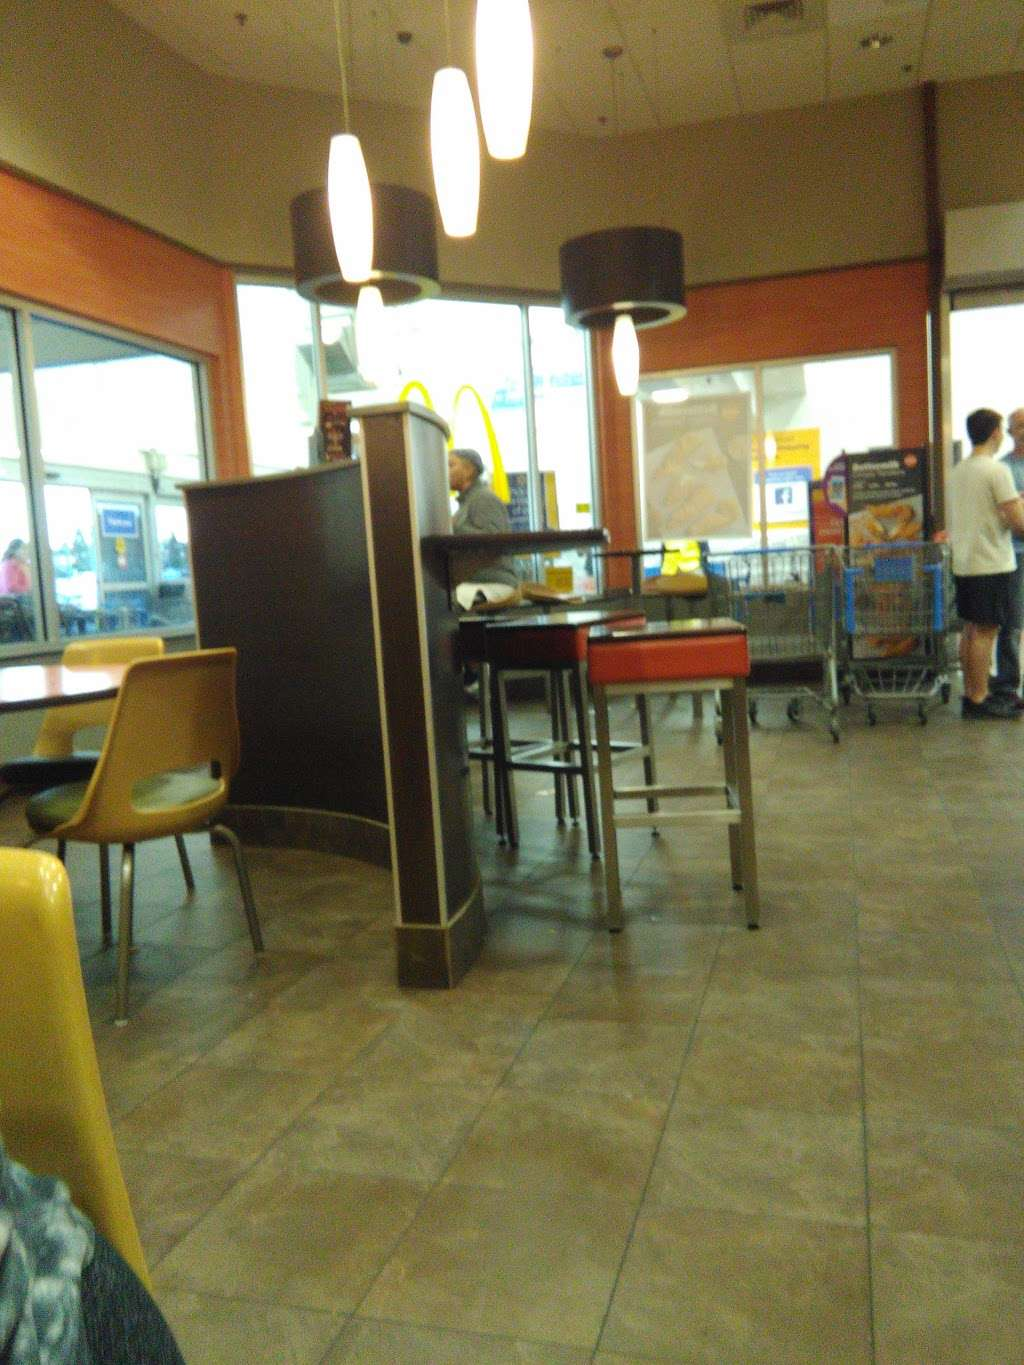 McDonalds - cafe  | Photo 4 of 10 | Address: 1800 Loucks Rd #100, York, PA 17408, USA | Phone: (717) 764-8923